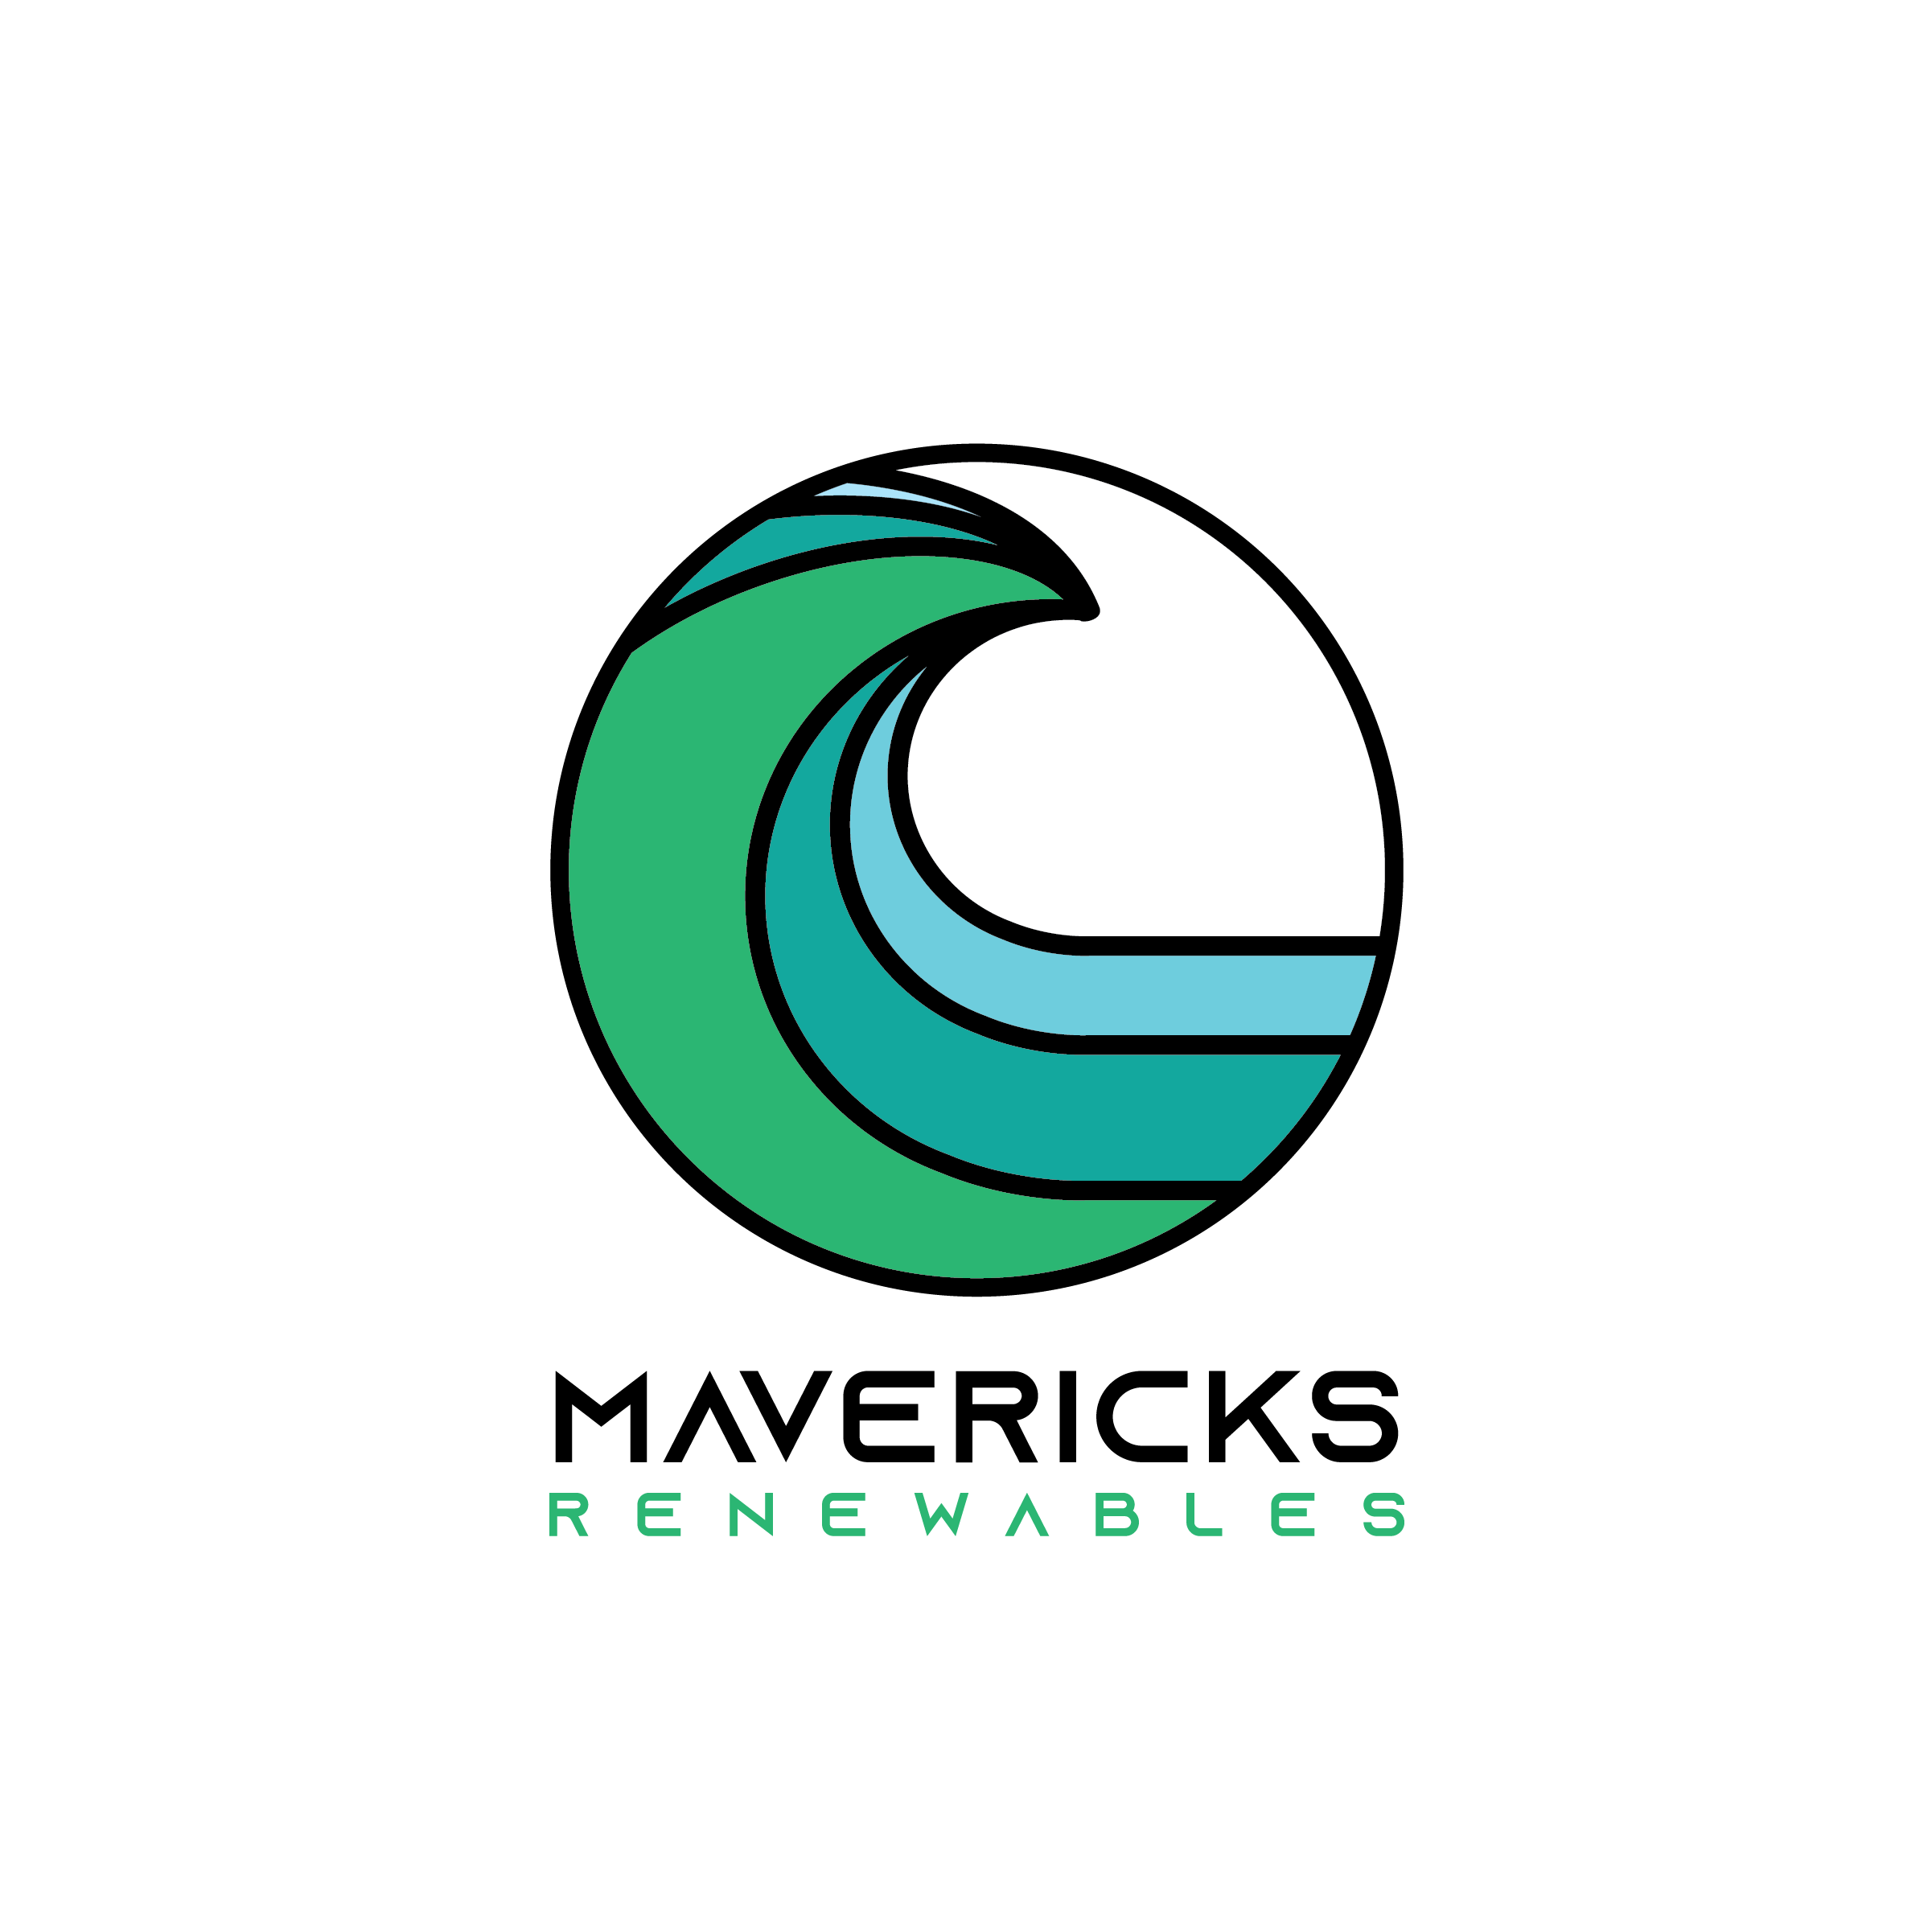 Mavericks Renewable Energy and San Benito Hemp Campus Team Up to Create the First Carbon Negative Microgrid